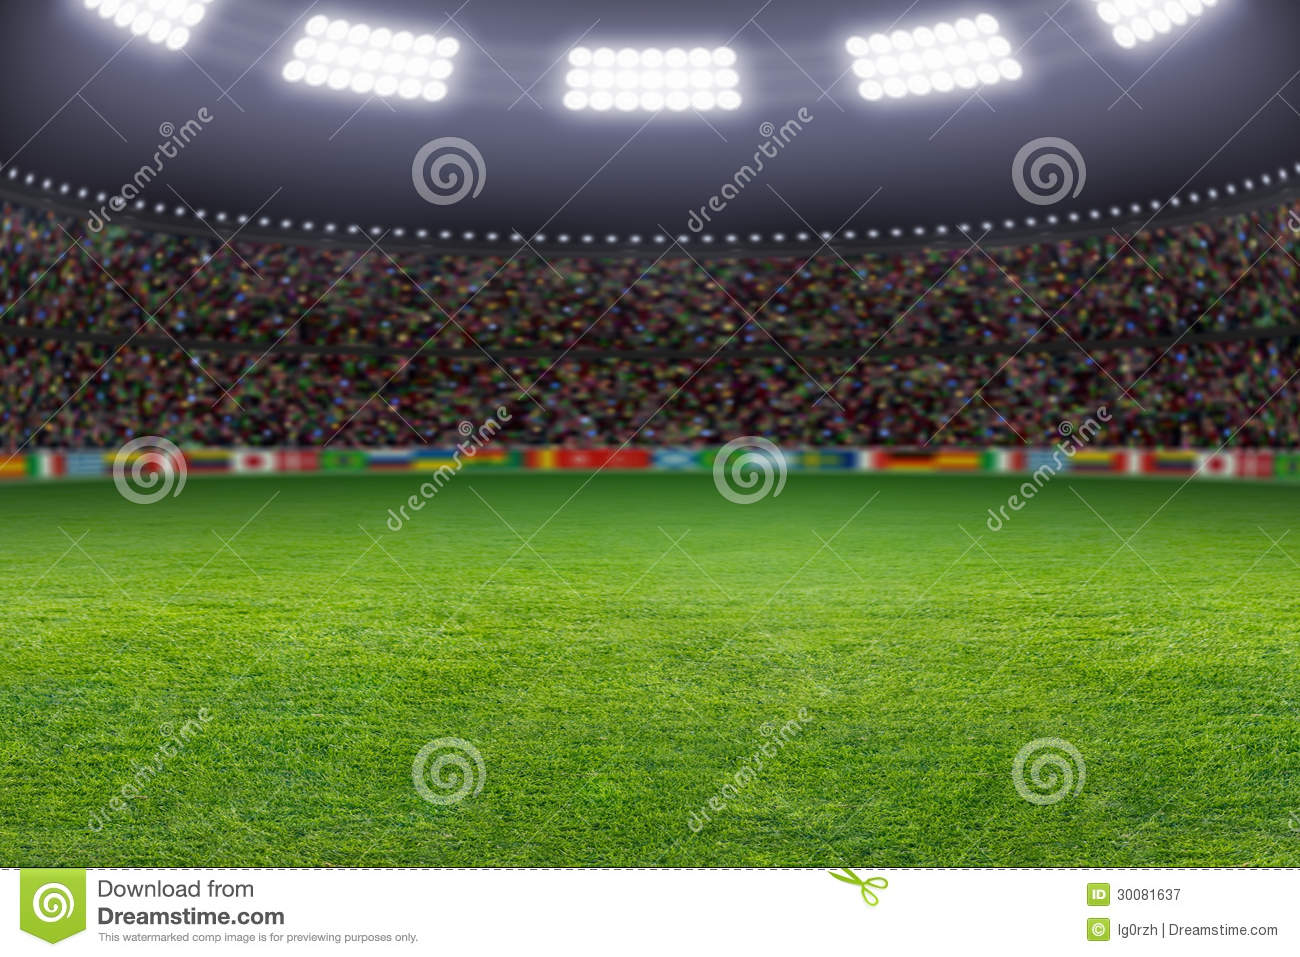 3d Football Stadium Wallpaper Soccer Stadium Royalty Free Stock Photography Image